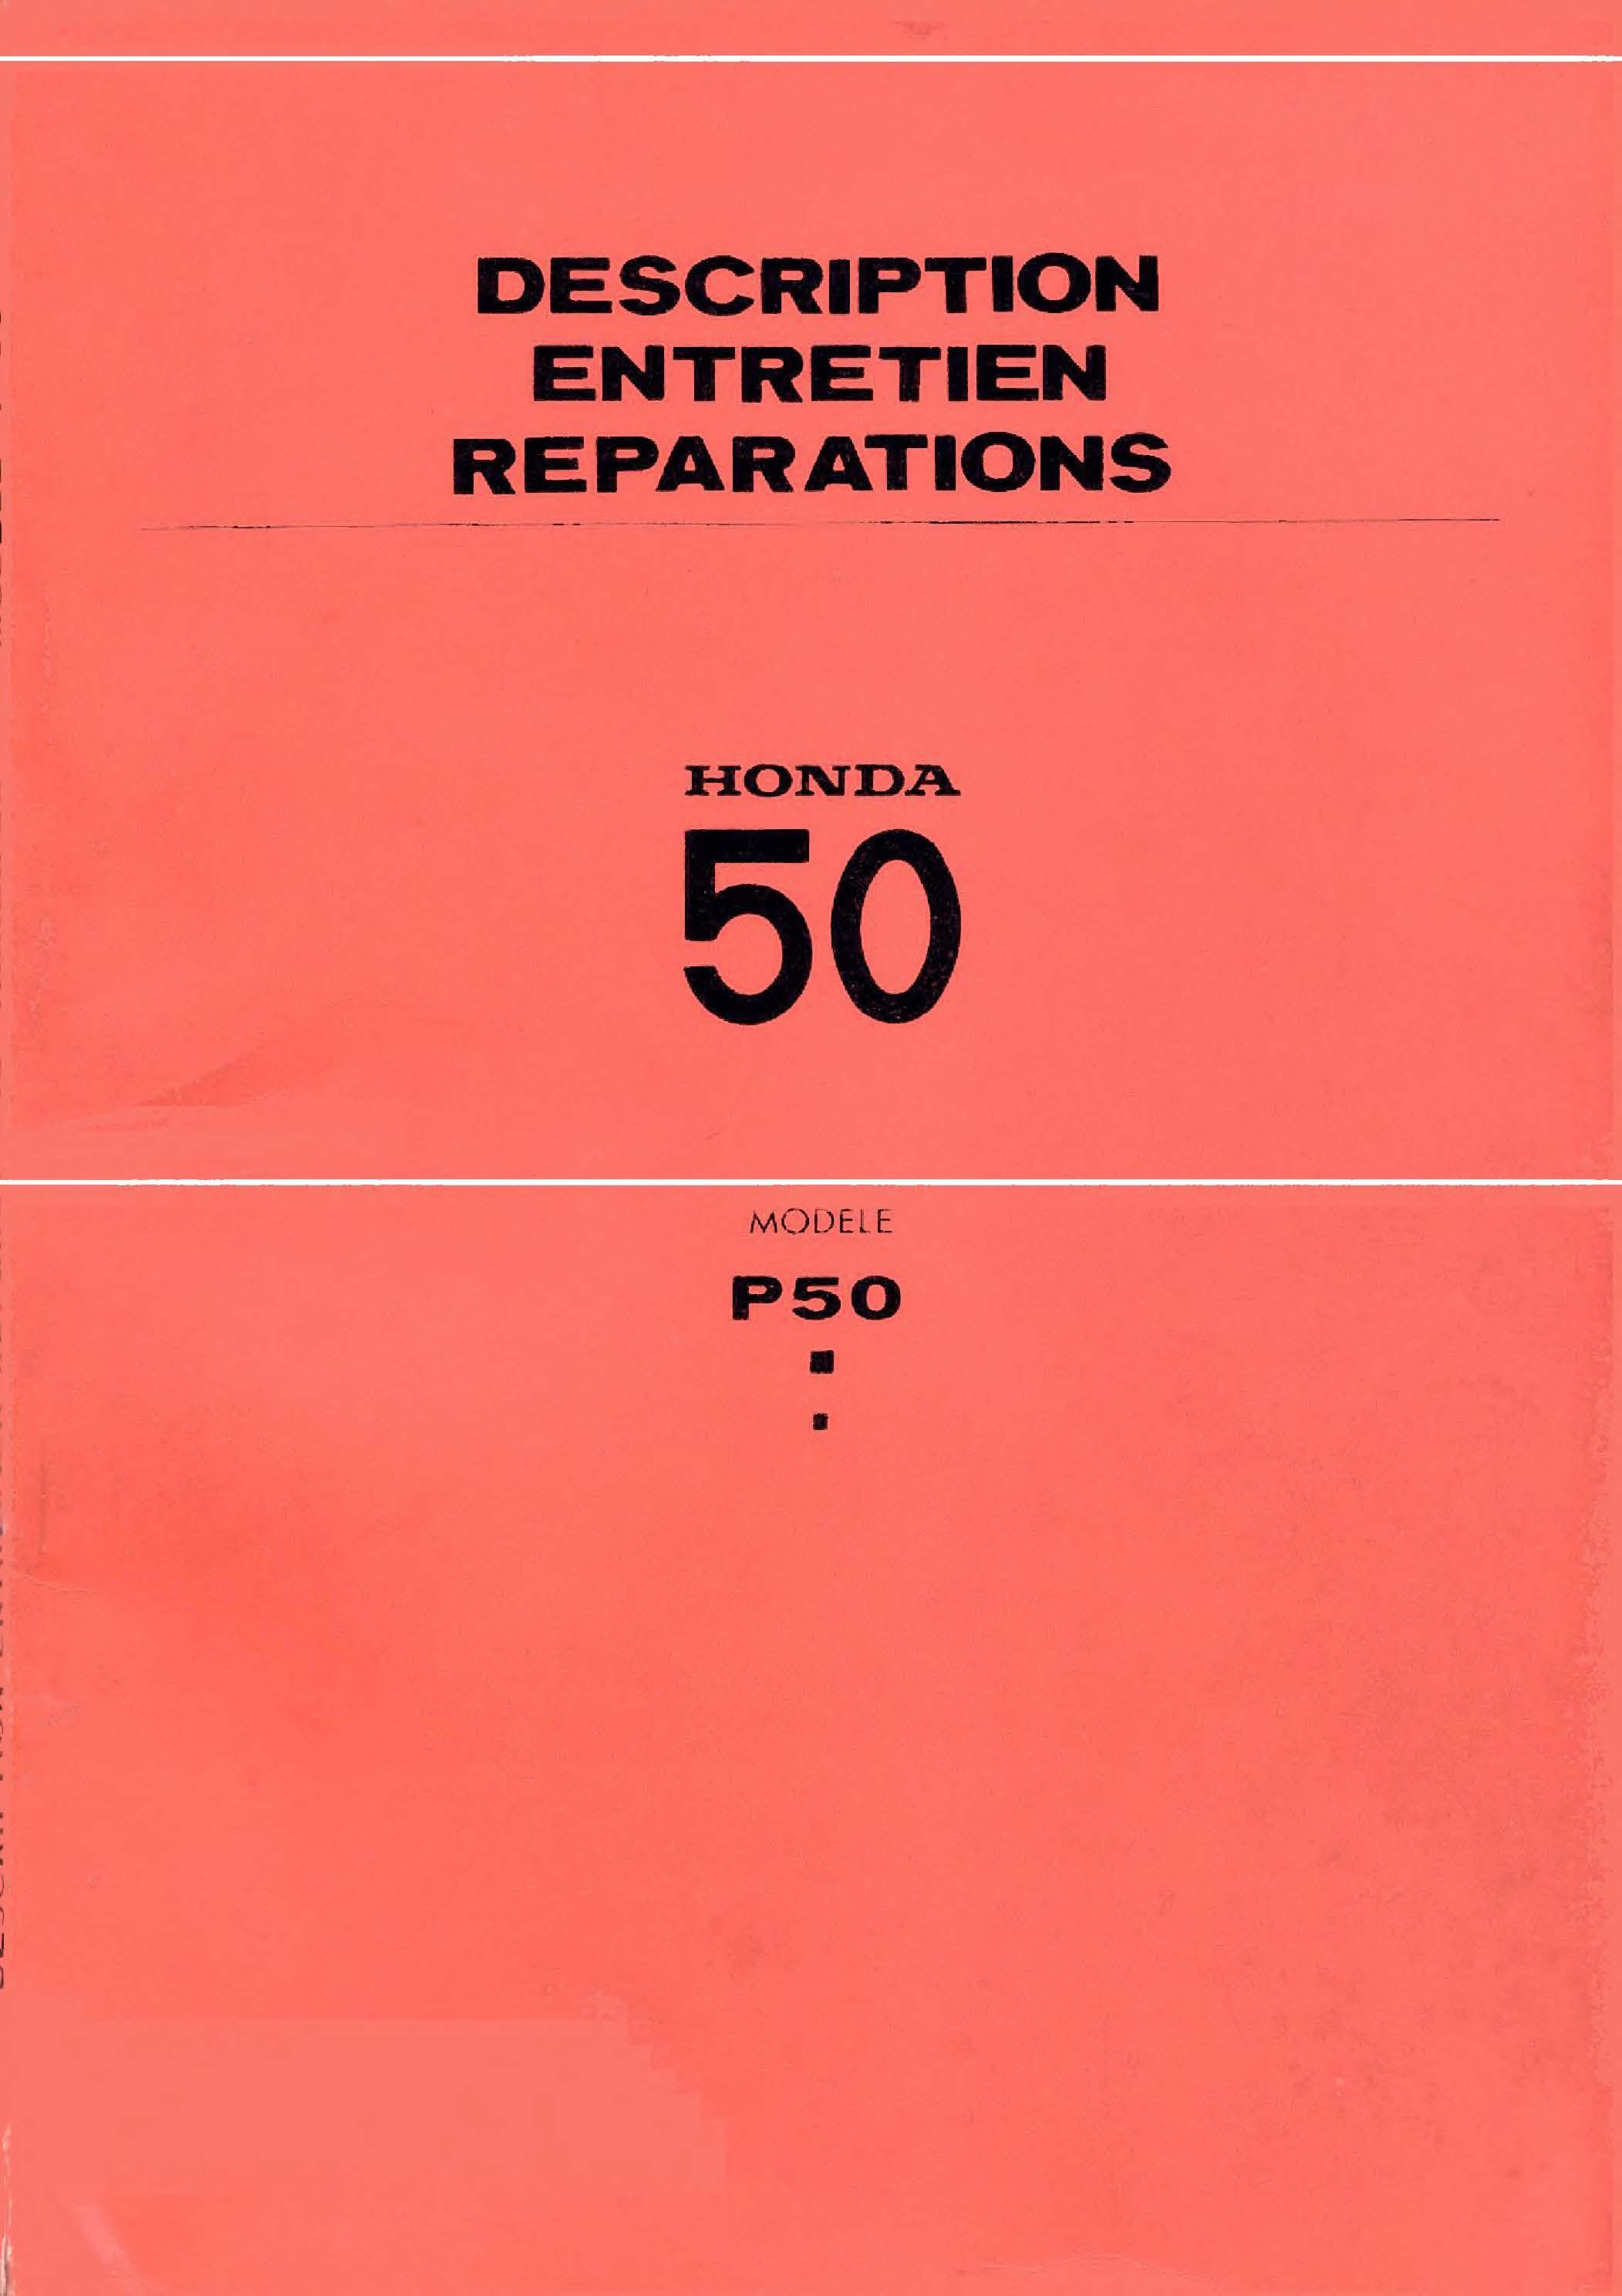 Workshop manual for Honda P50 (1968) (French)